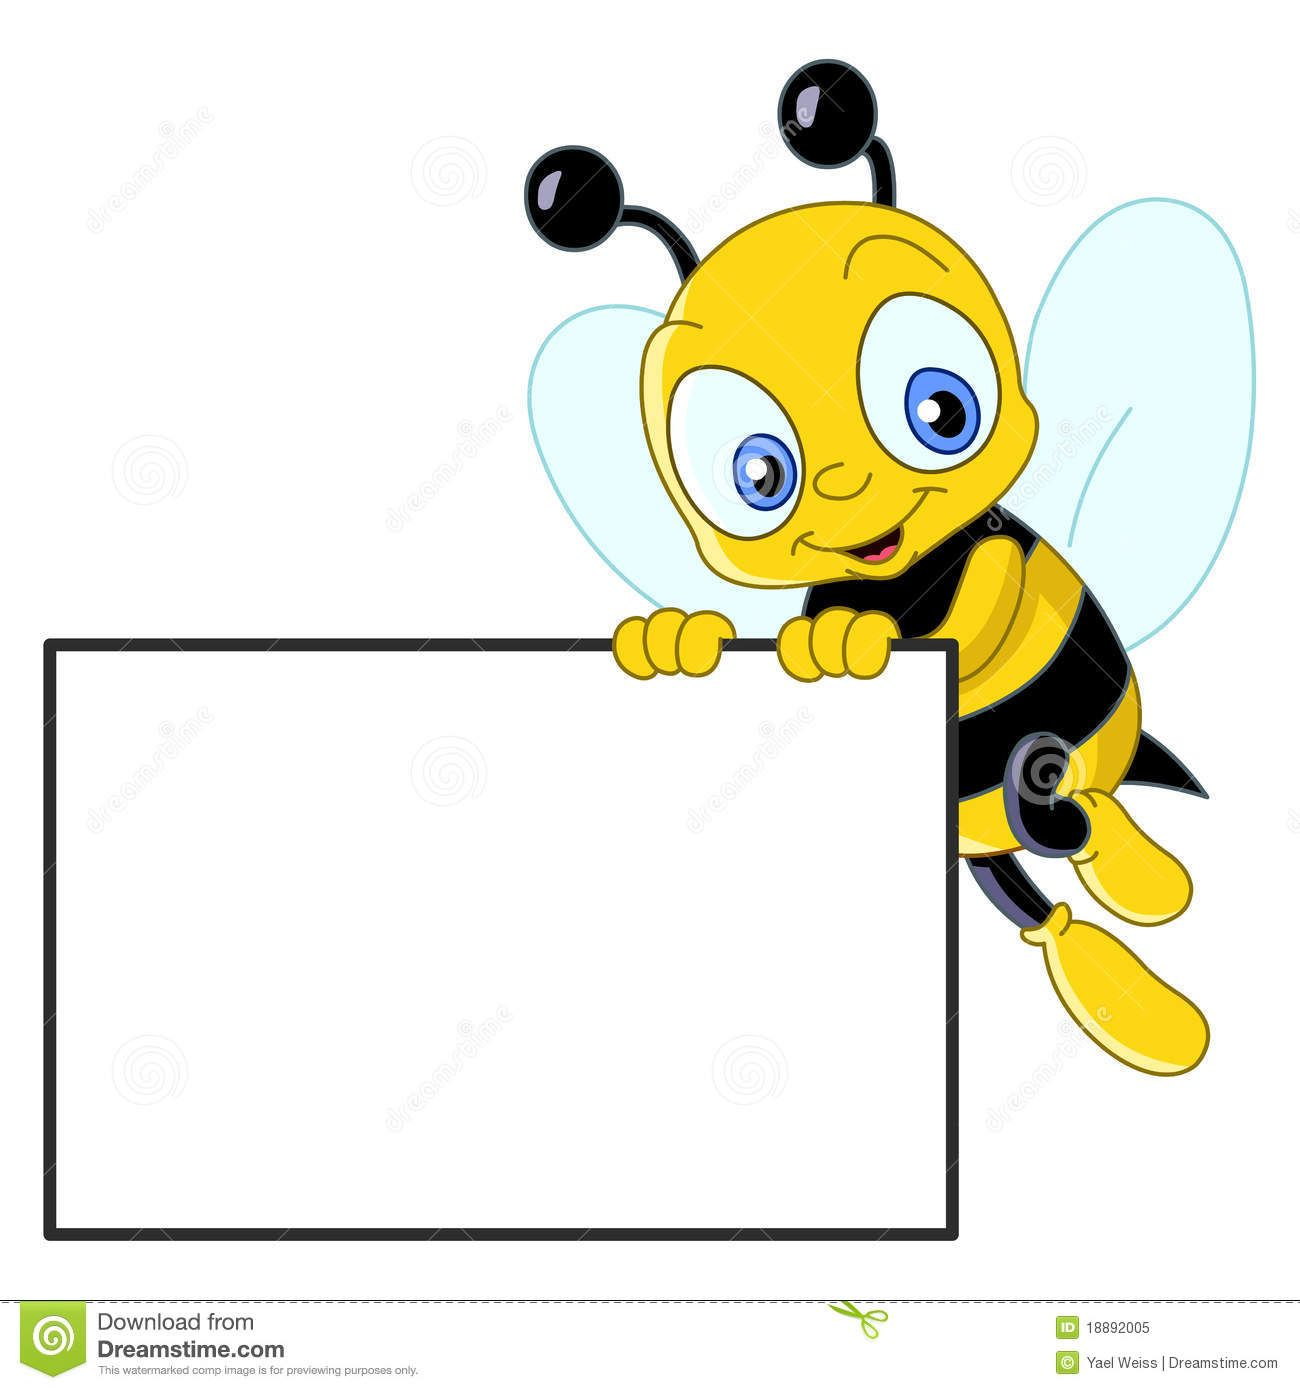 imagini pentru teacher bee clipart bees pinterest bee clipart rh pinterest com Bee Clip Art No Background Teacher Appreciation Borders